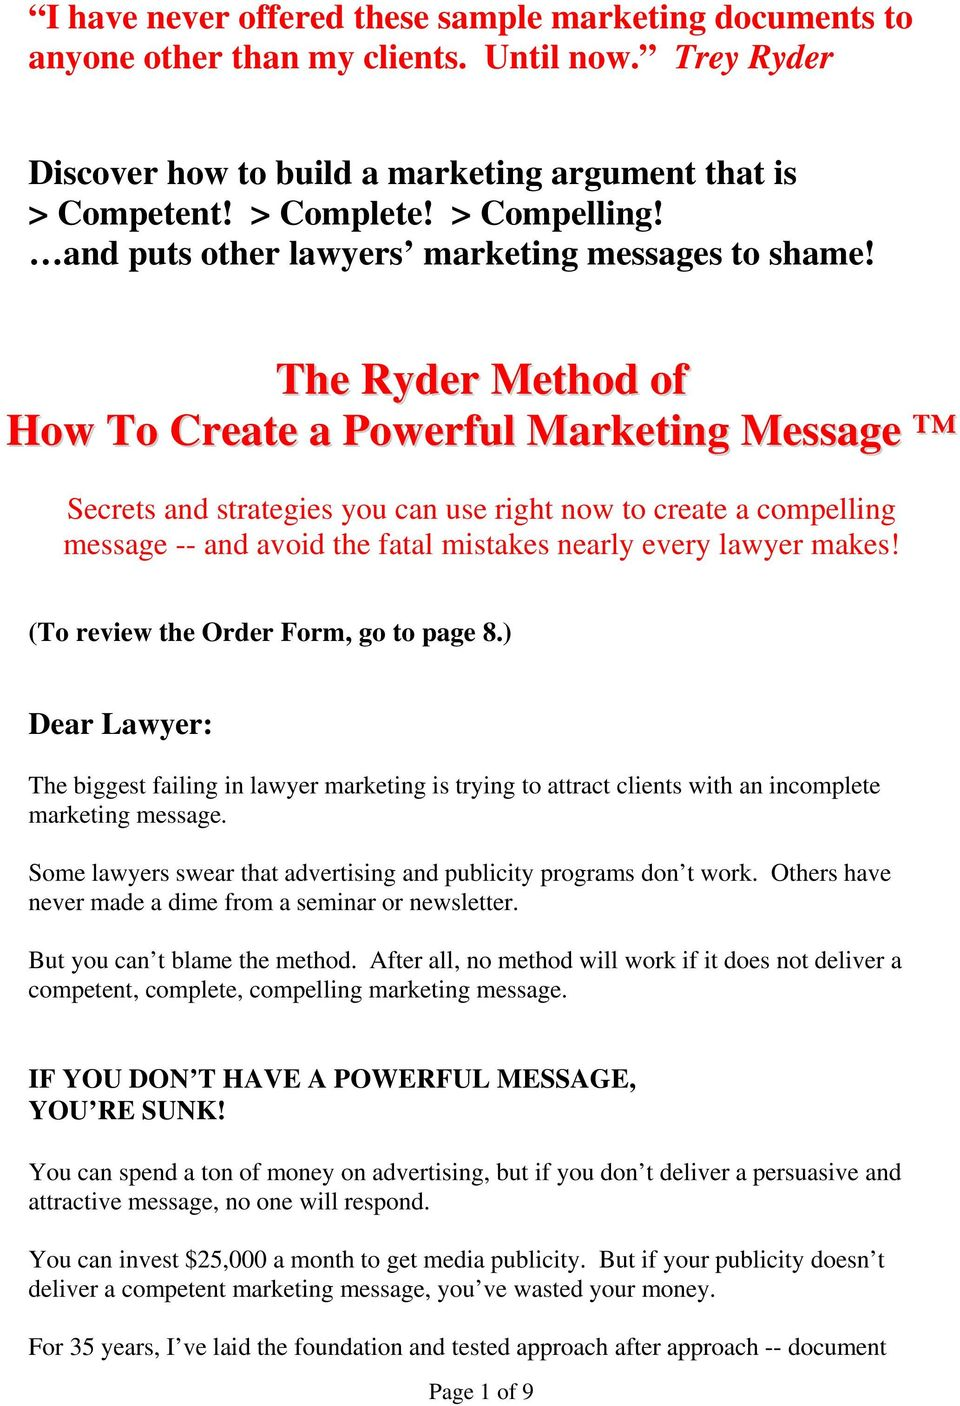 The Ryder Method of How To Create a Powerful Marketing Message Secrets and strategies you can use right now to create a compelling message -- and avoid the fatal mistakes nearly every lawyer makes!